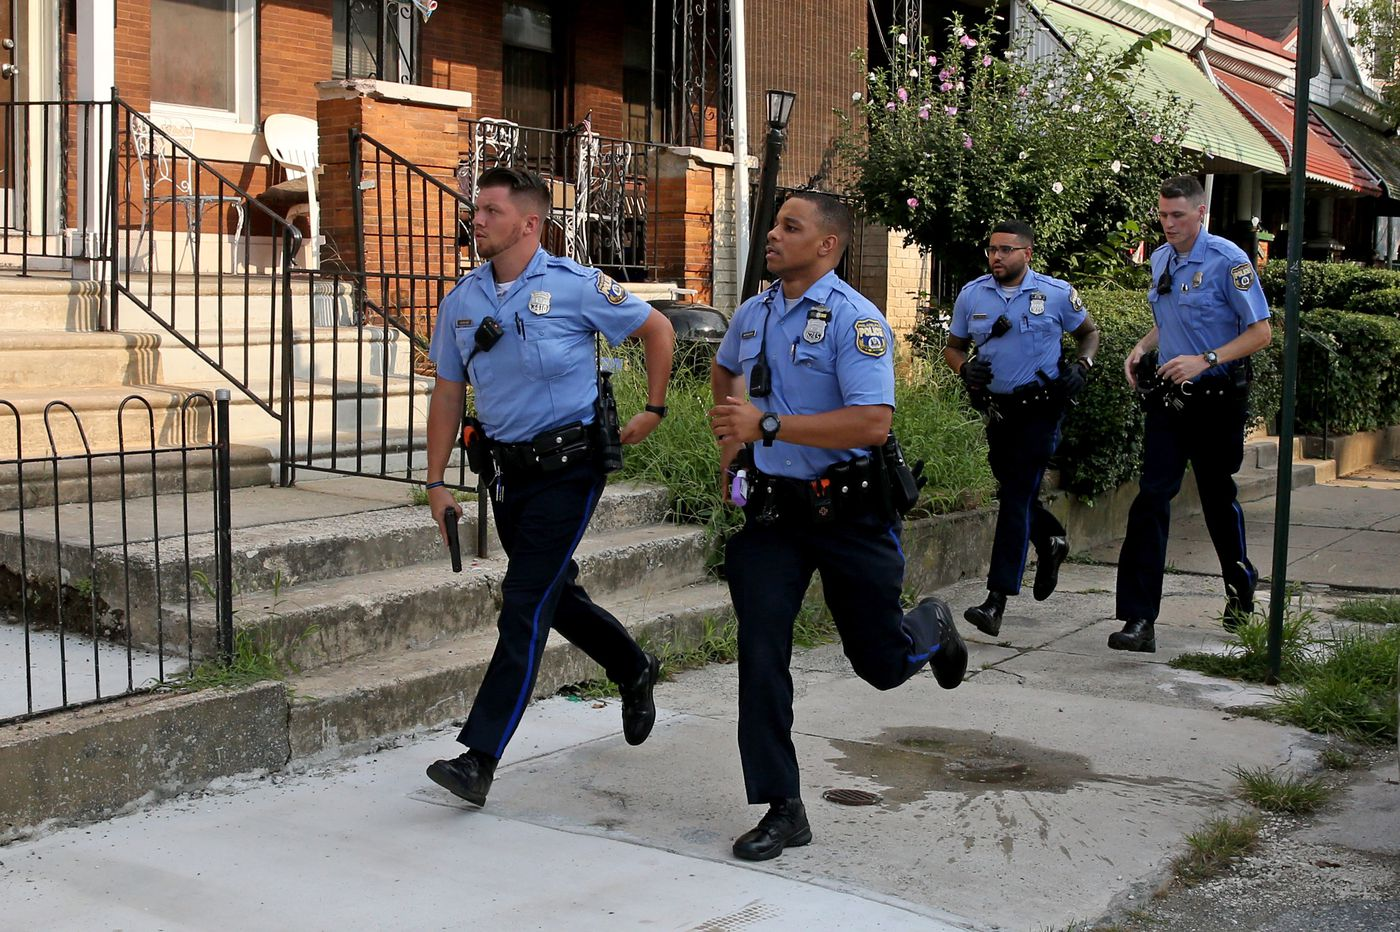 'We got an officer down!': Inside North Philly shootout that left 6 cops shot